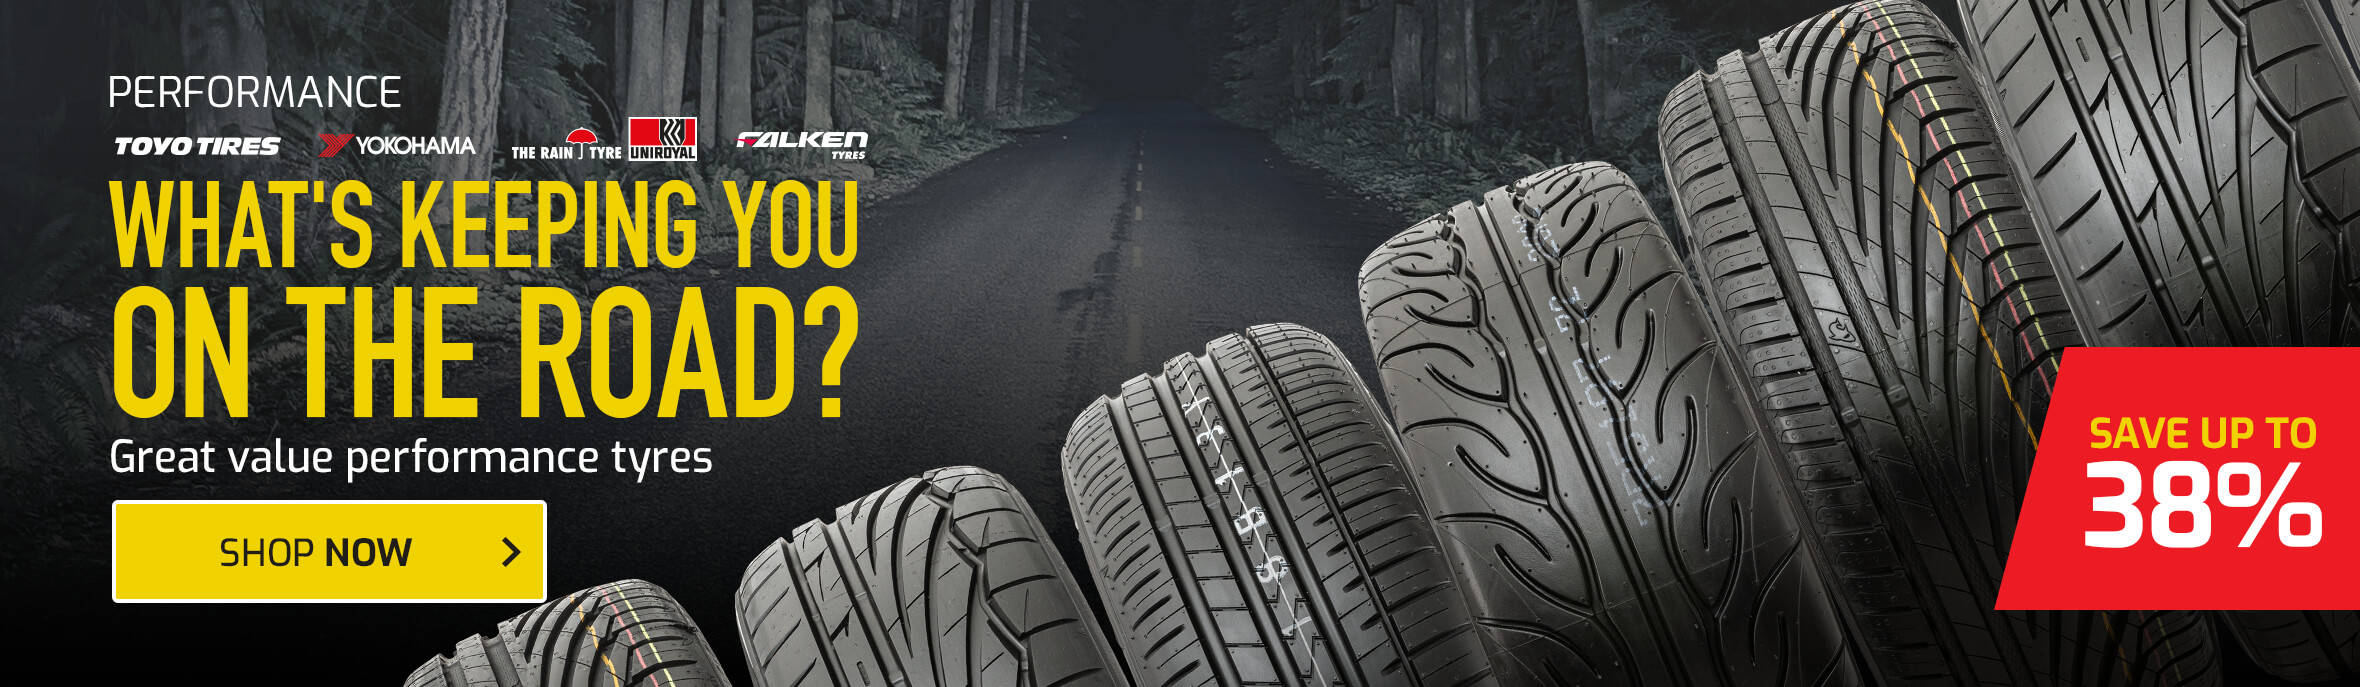 Save up to 38% on Performance Tyres